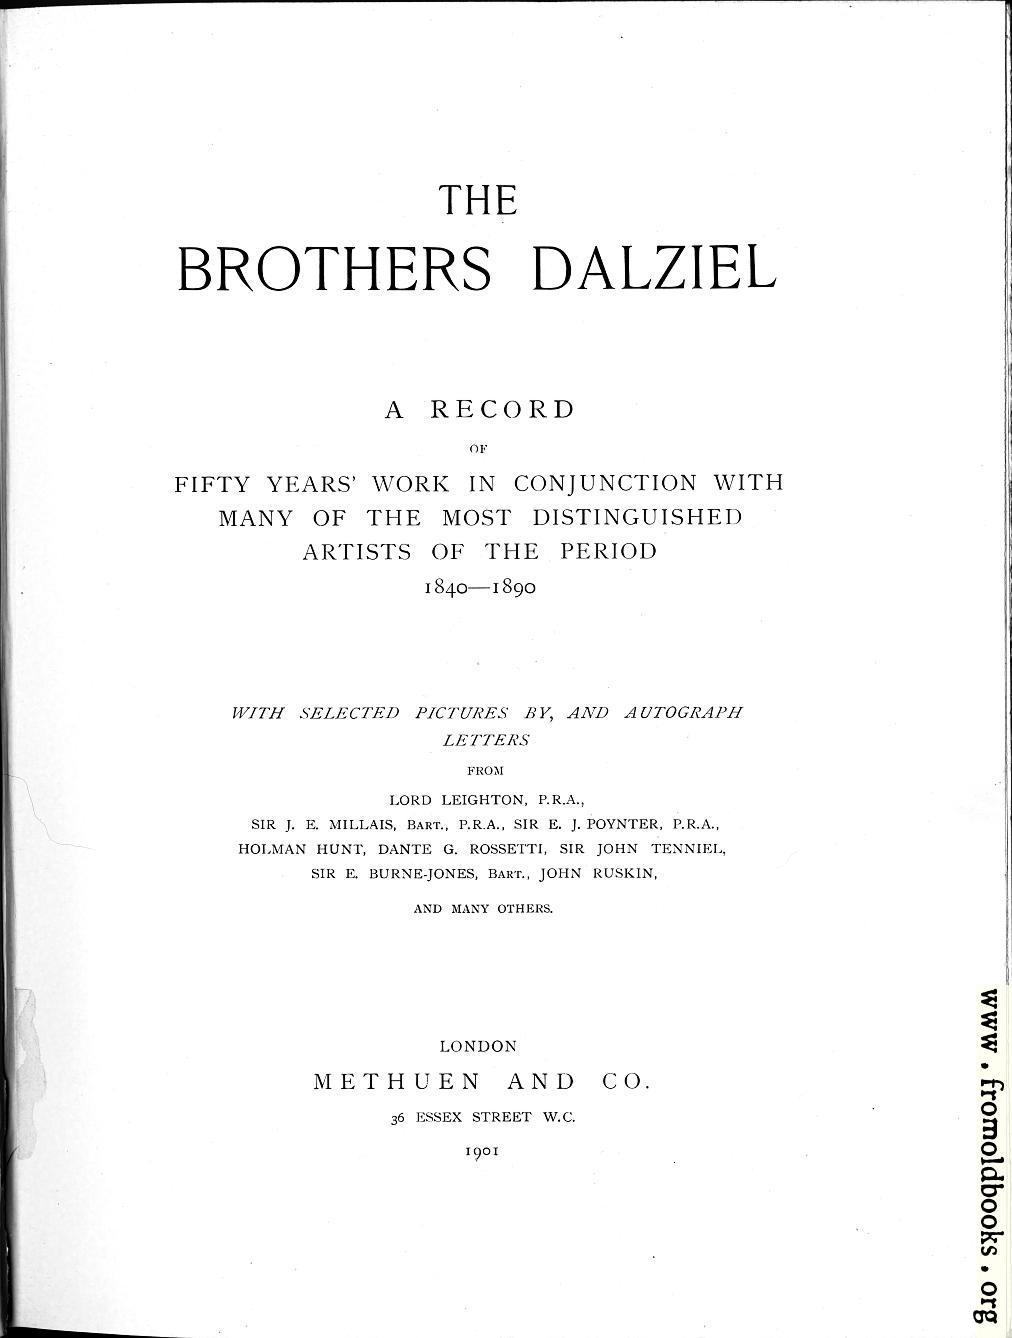 [Picture: Title Page, The Brothers Dalziel]